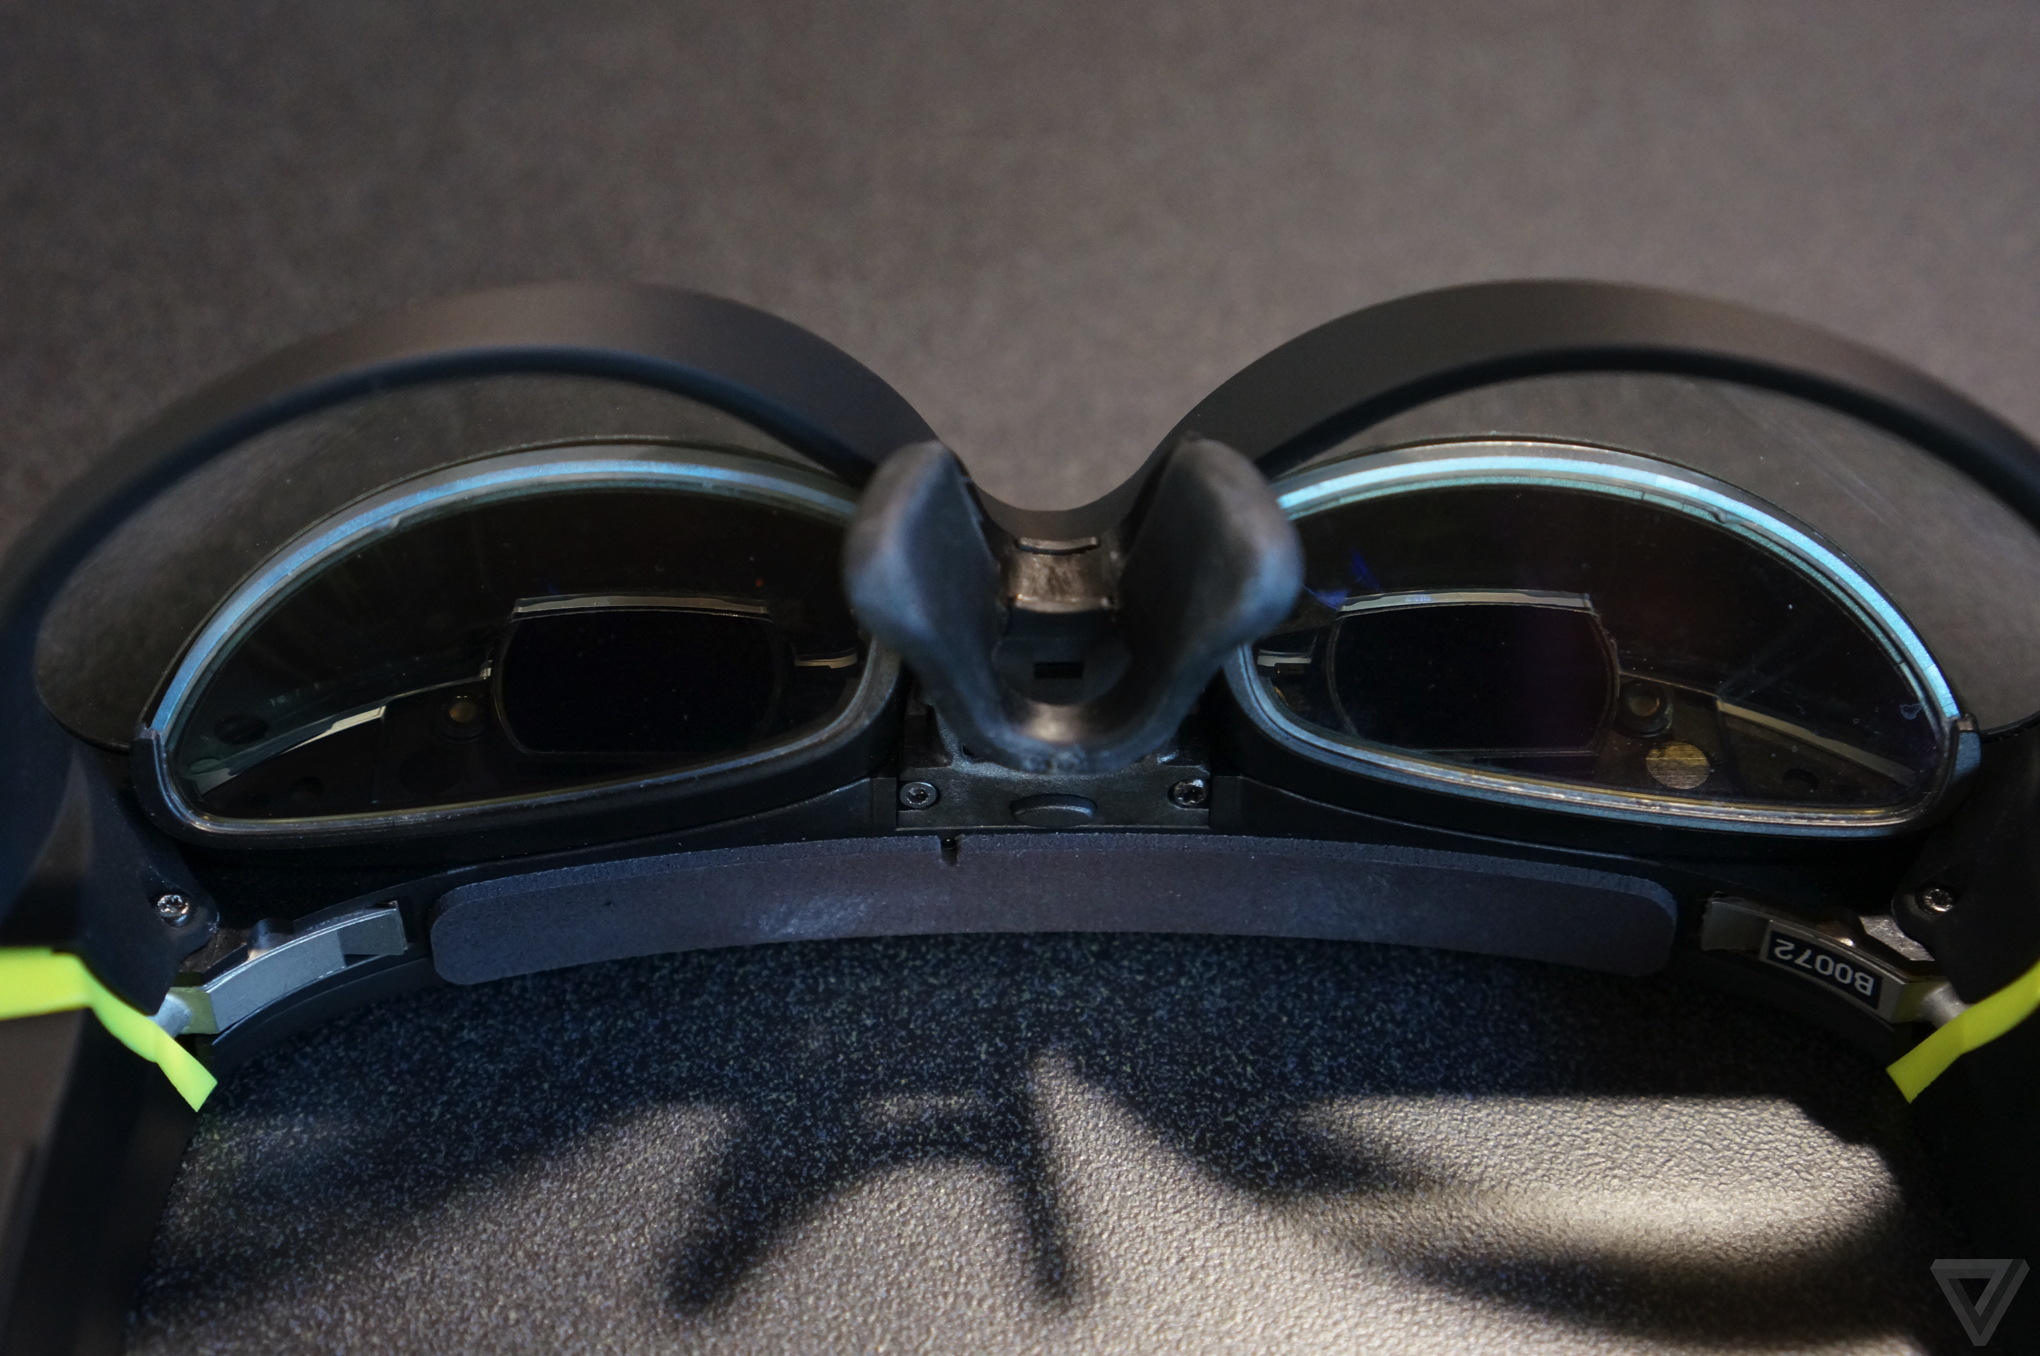 41453c9dfb9b The Augmented Vision goggles can also indicate when you've received a text  message, at which point you can use your steering wheel controls to tell  the ...